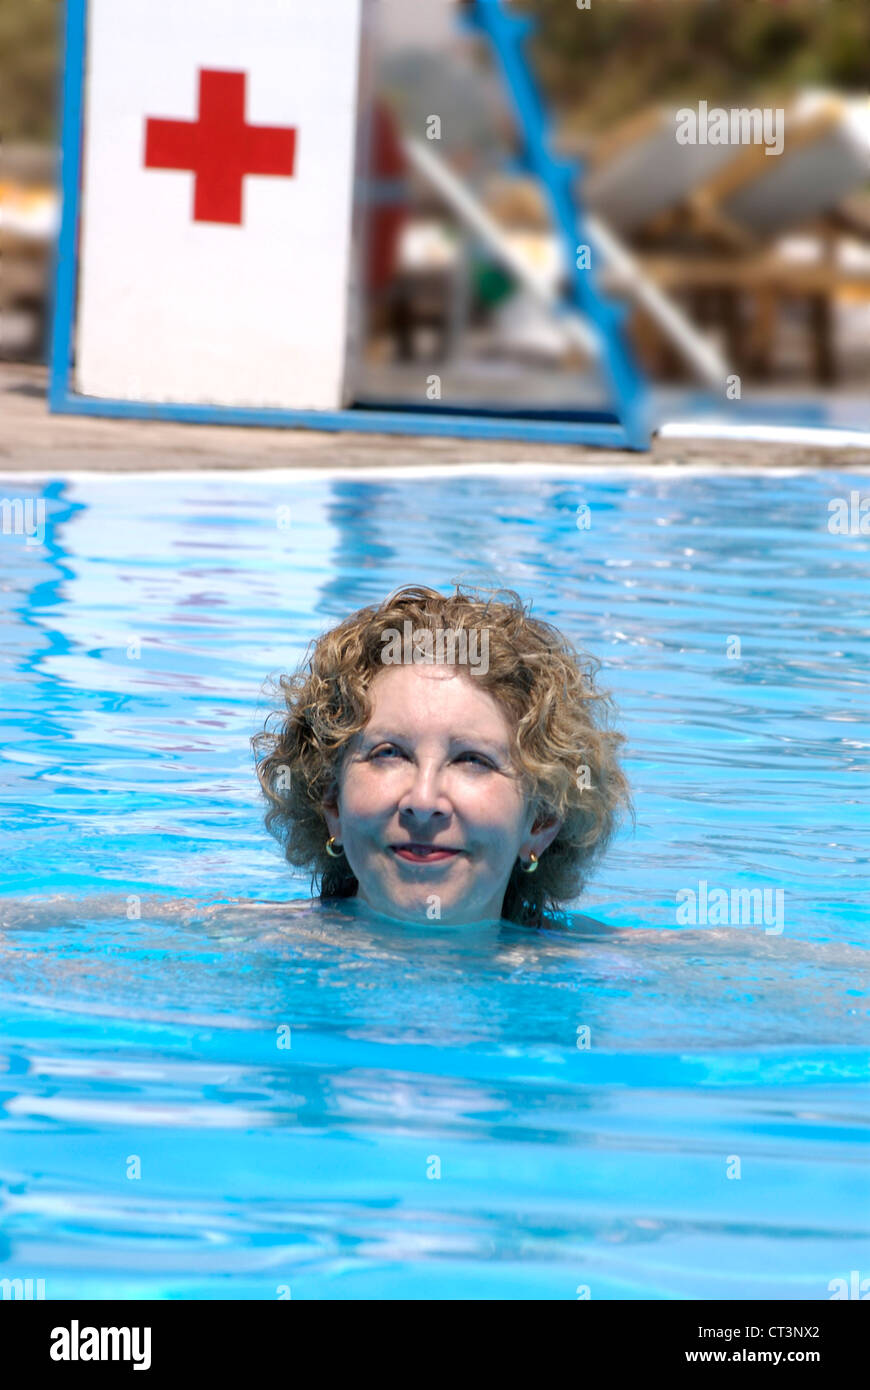 60 Year Old Woman Swimming Stock Photos 60 Year Old Woman Swimming Stock Images Alamy